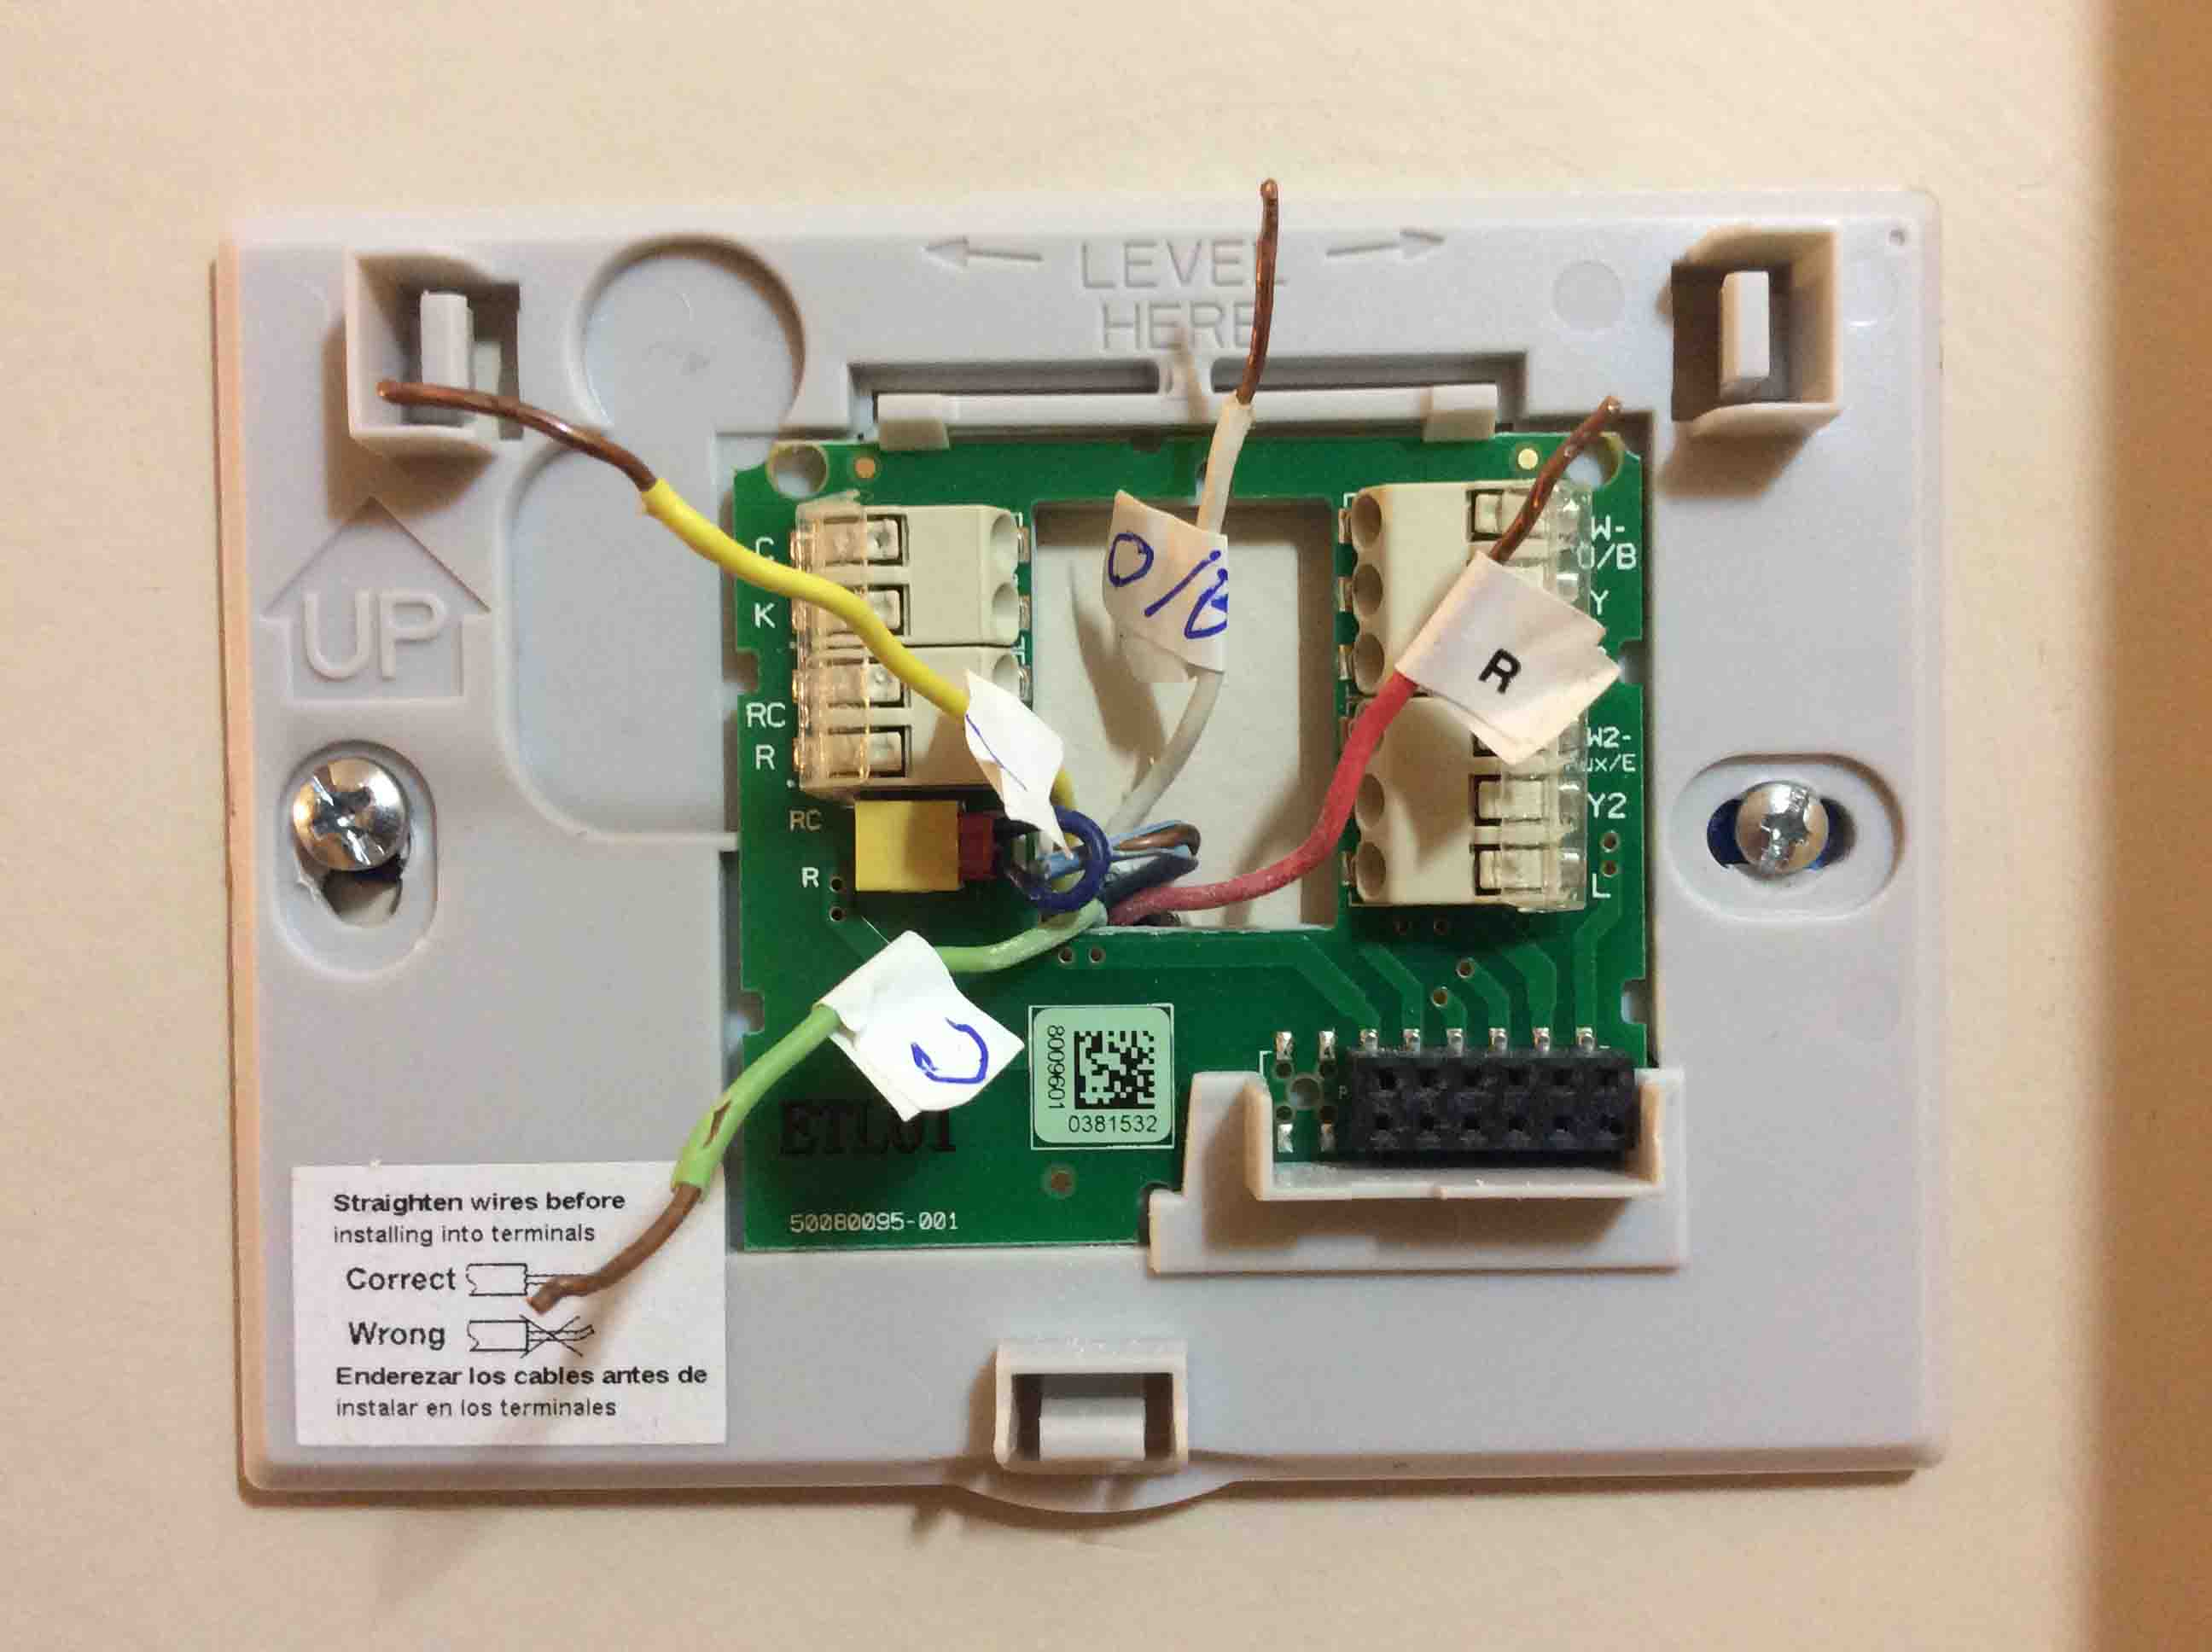 HoneywellSmartThermostatRTH9580WFWallPlateMounted_001 honeywell smart thermostat wiring instructions rth9580wf tom's Honeywell RTH9580WF Manual at n-0.co